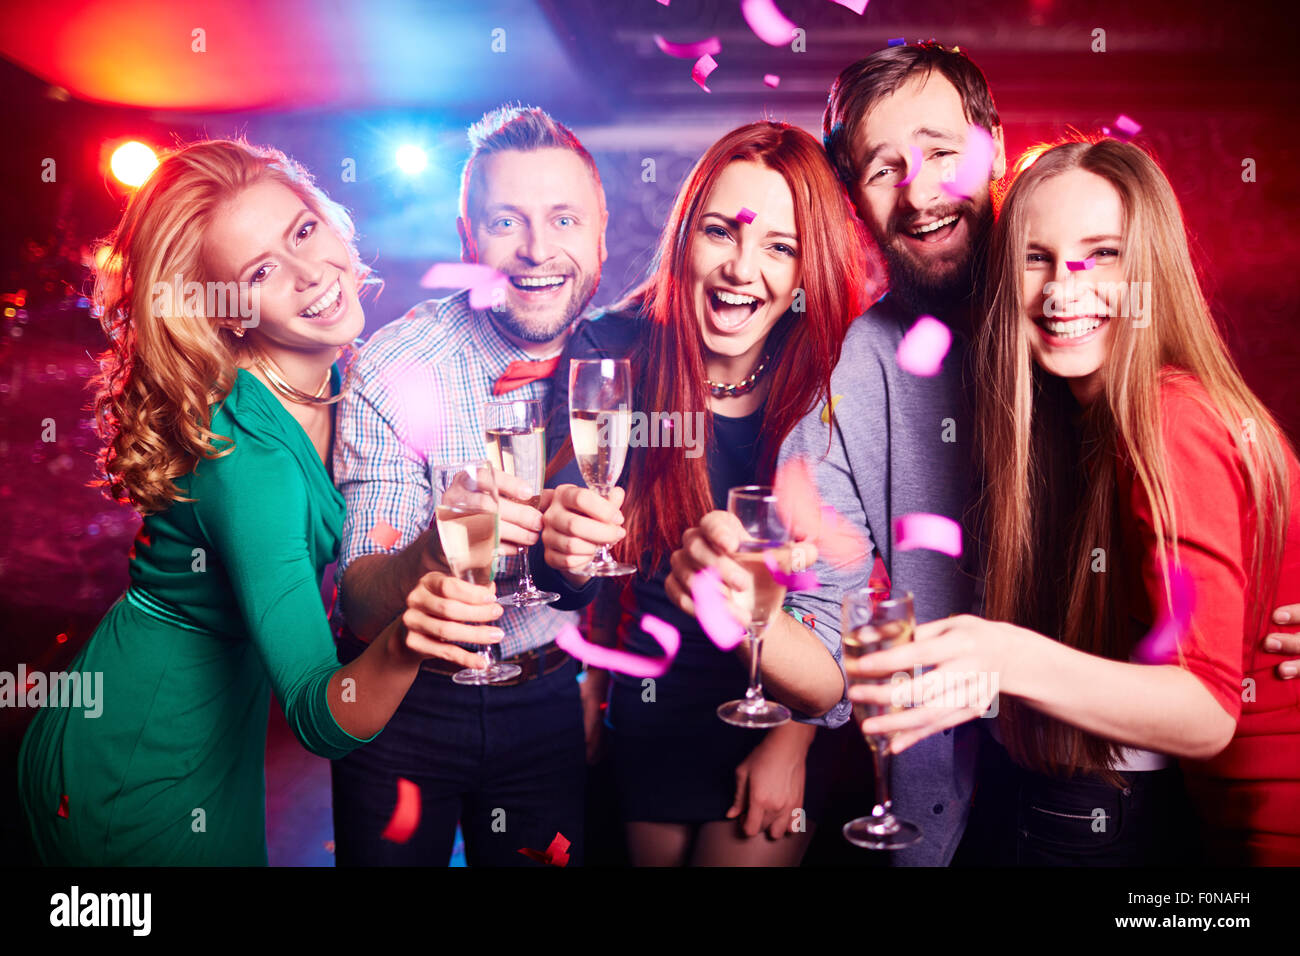 Friends partying at nightclub - Stock Image